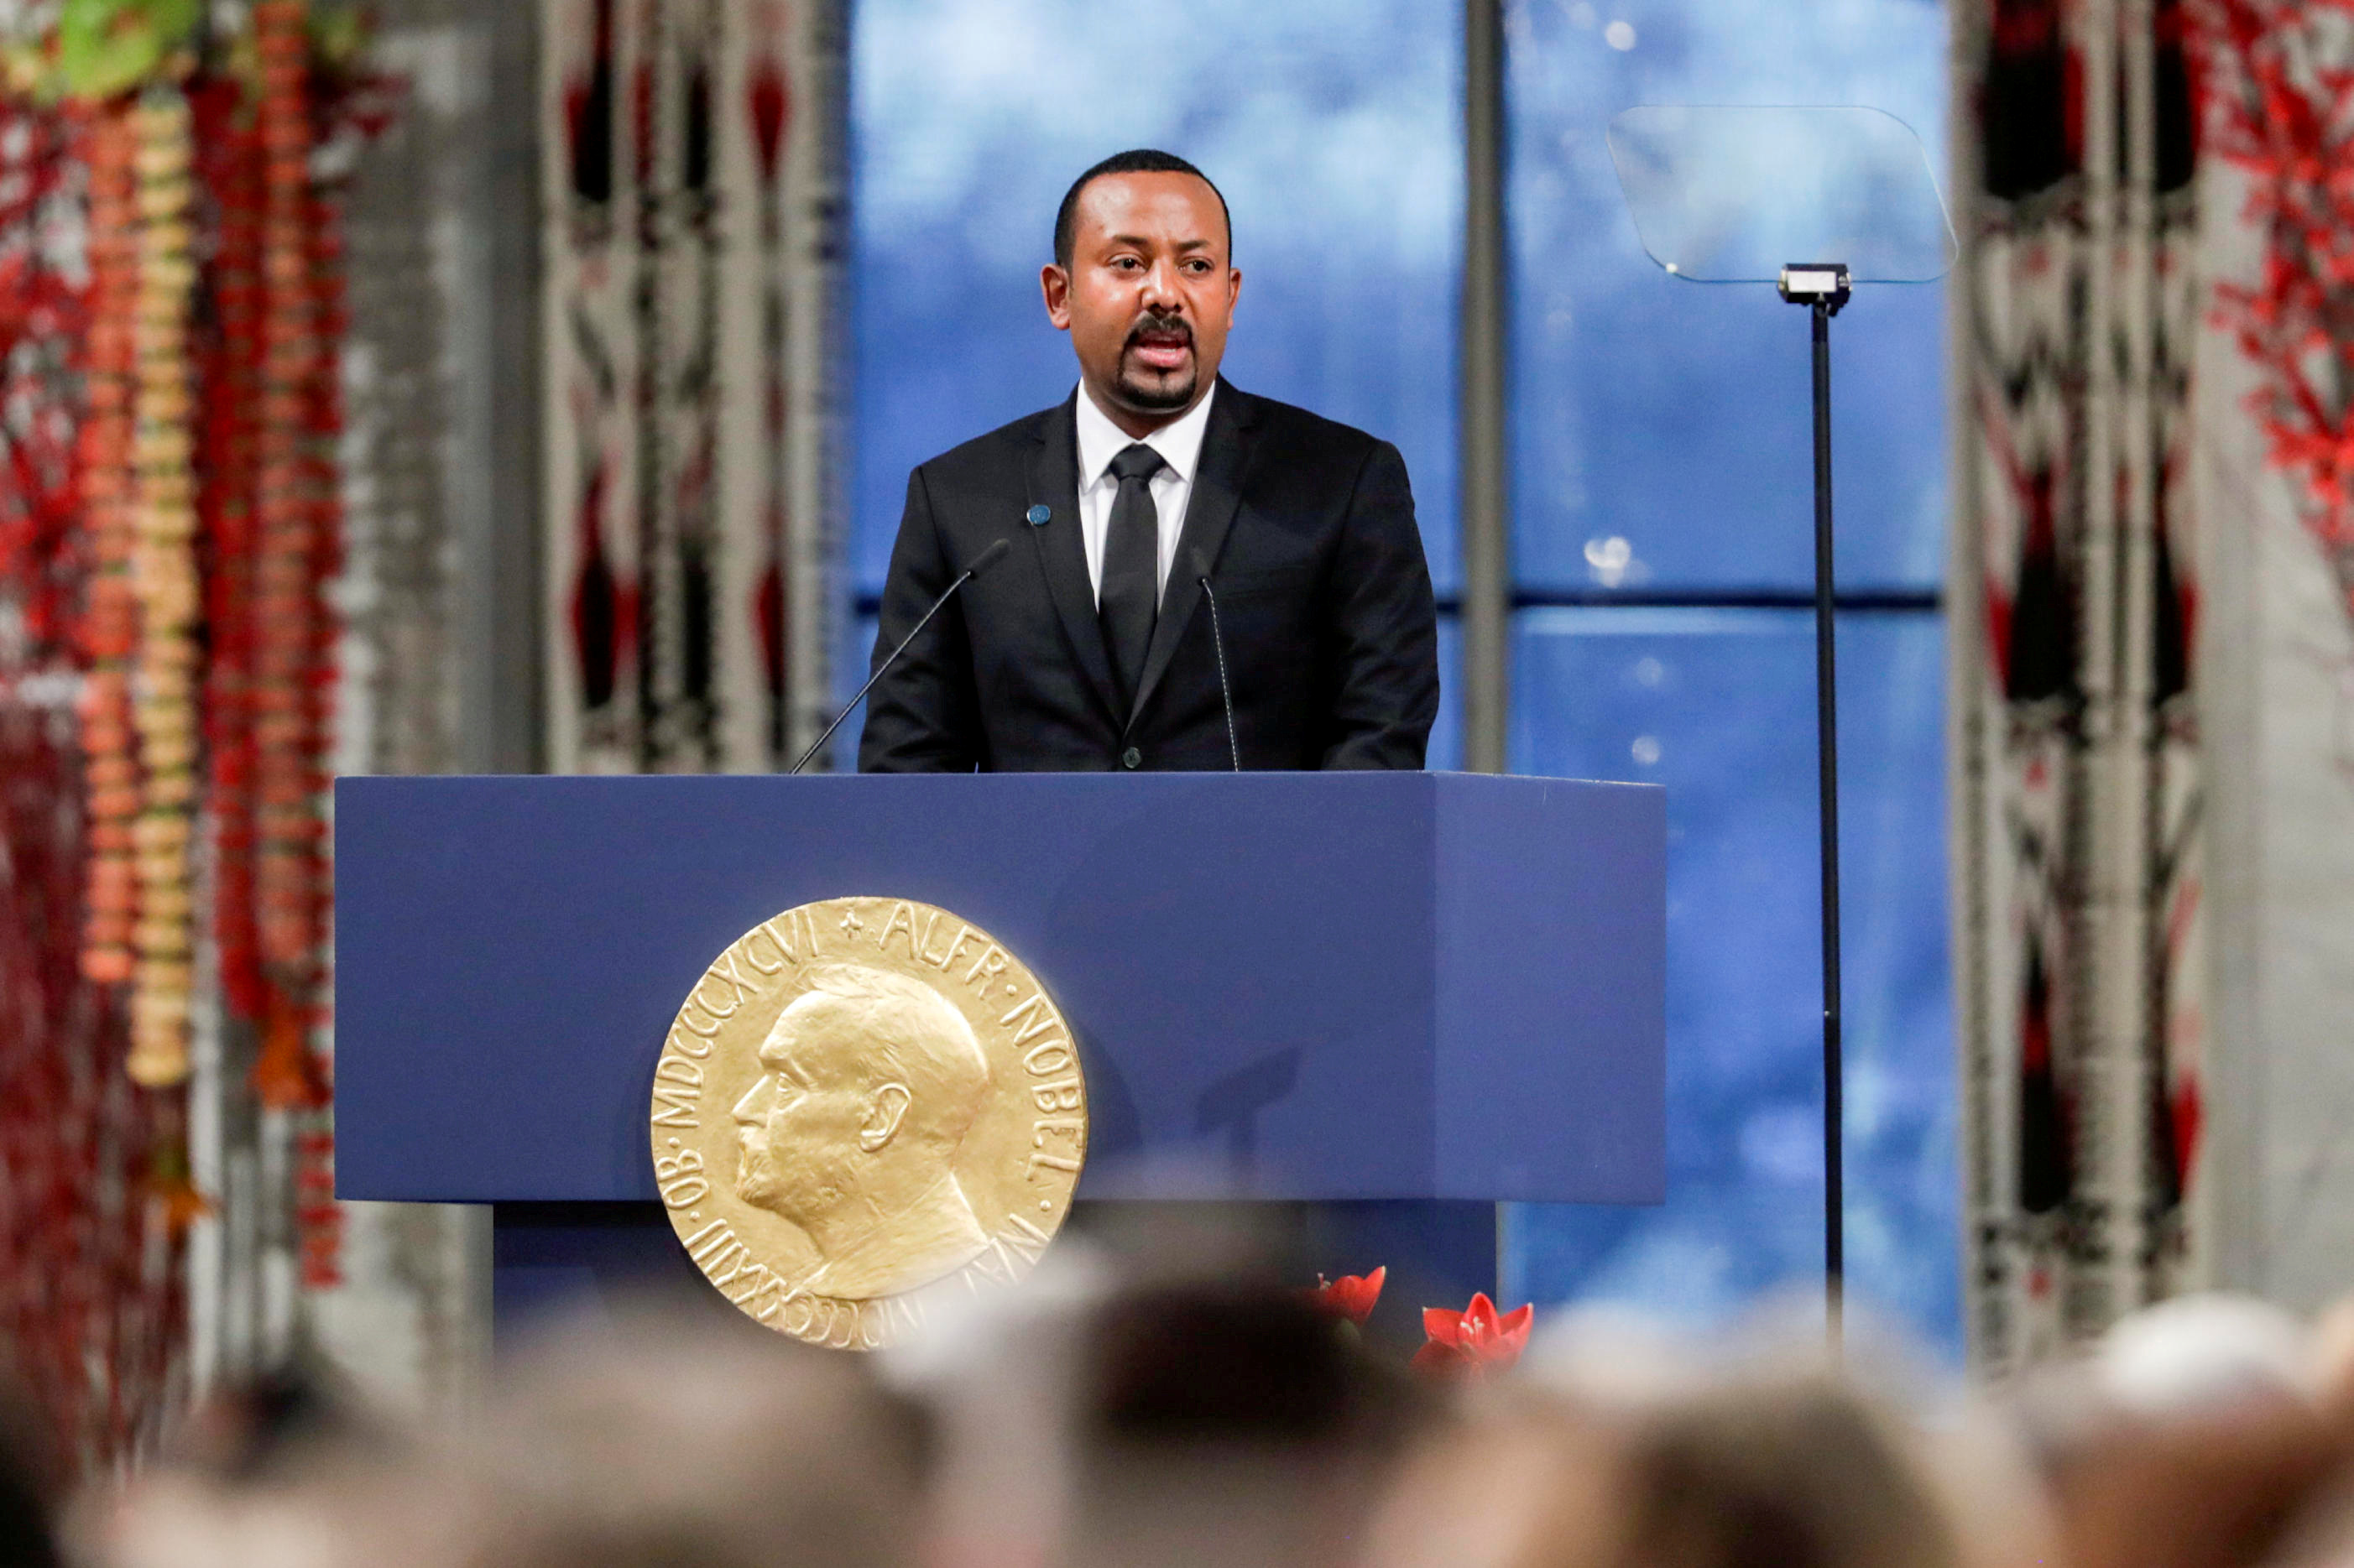 Nobel Peace Prize Laureate Ethiopian Prime Minister Abiy Ahmed Ali delivers his speach during the awarding ceremony in Oslo City Hall, Norway December 10, 2019.  NTB Scanpix/Stian Lysberg Solum via REUTERS